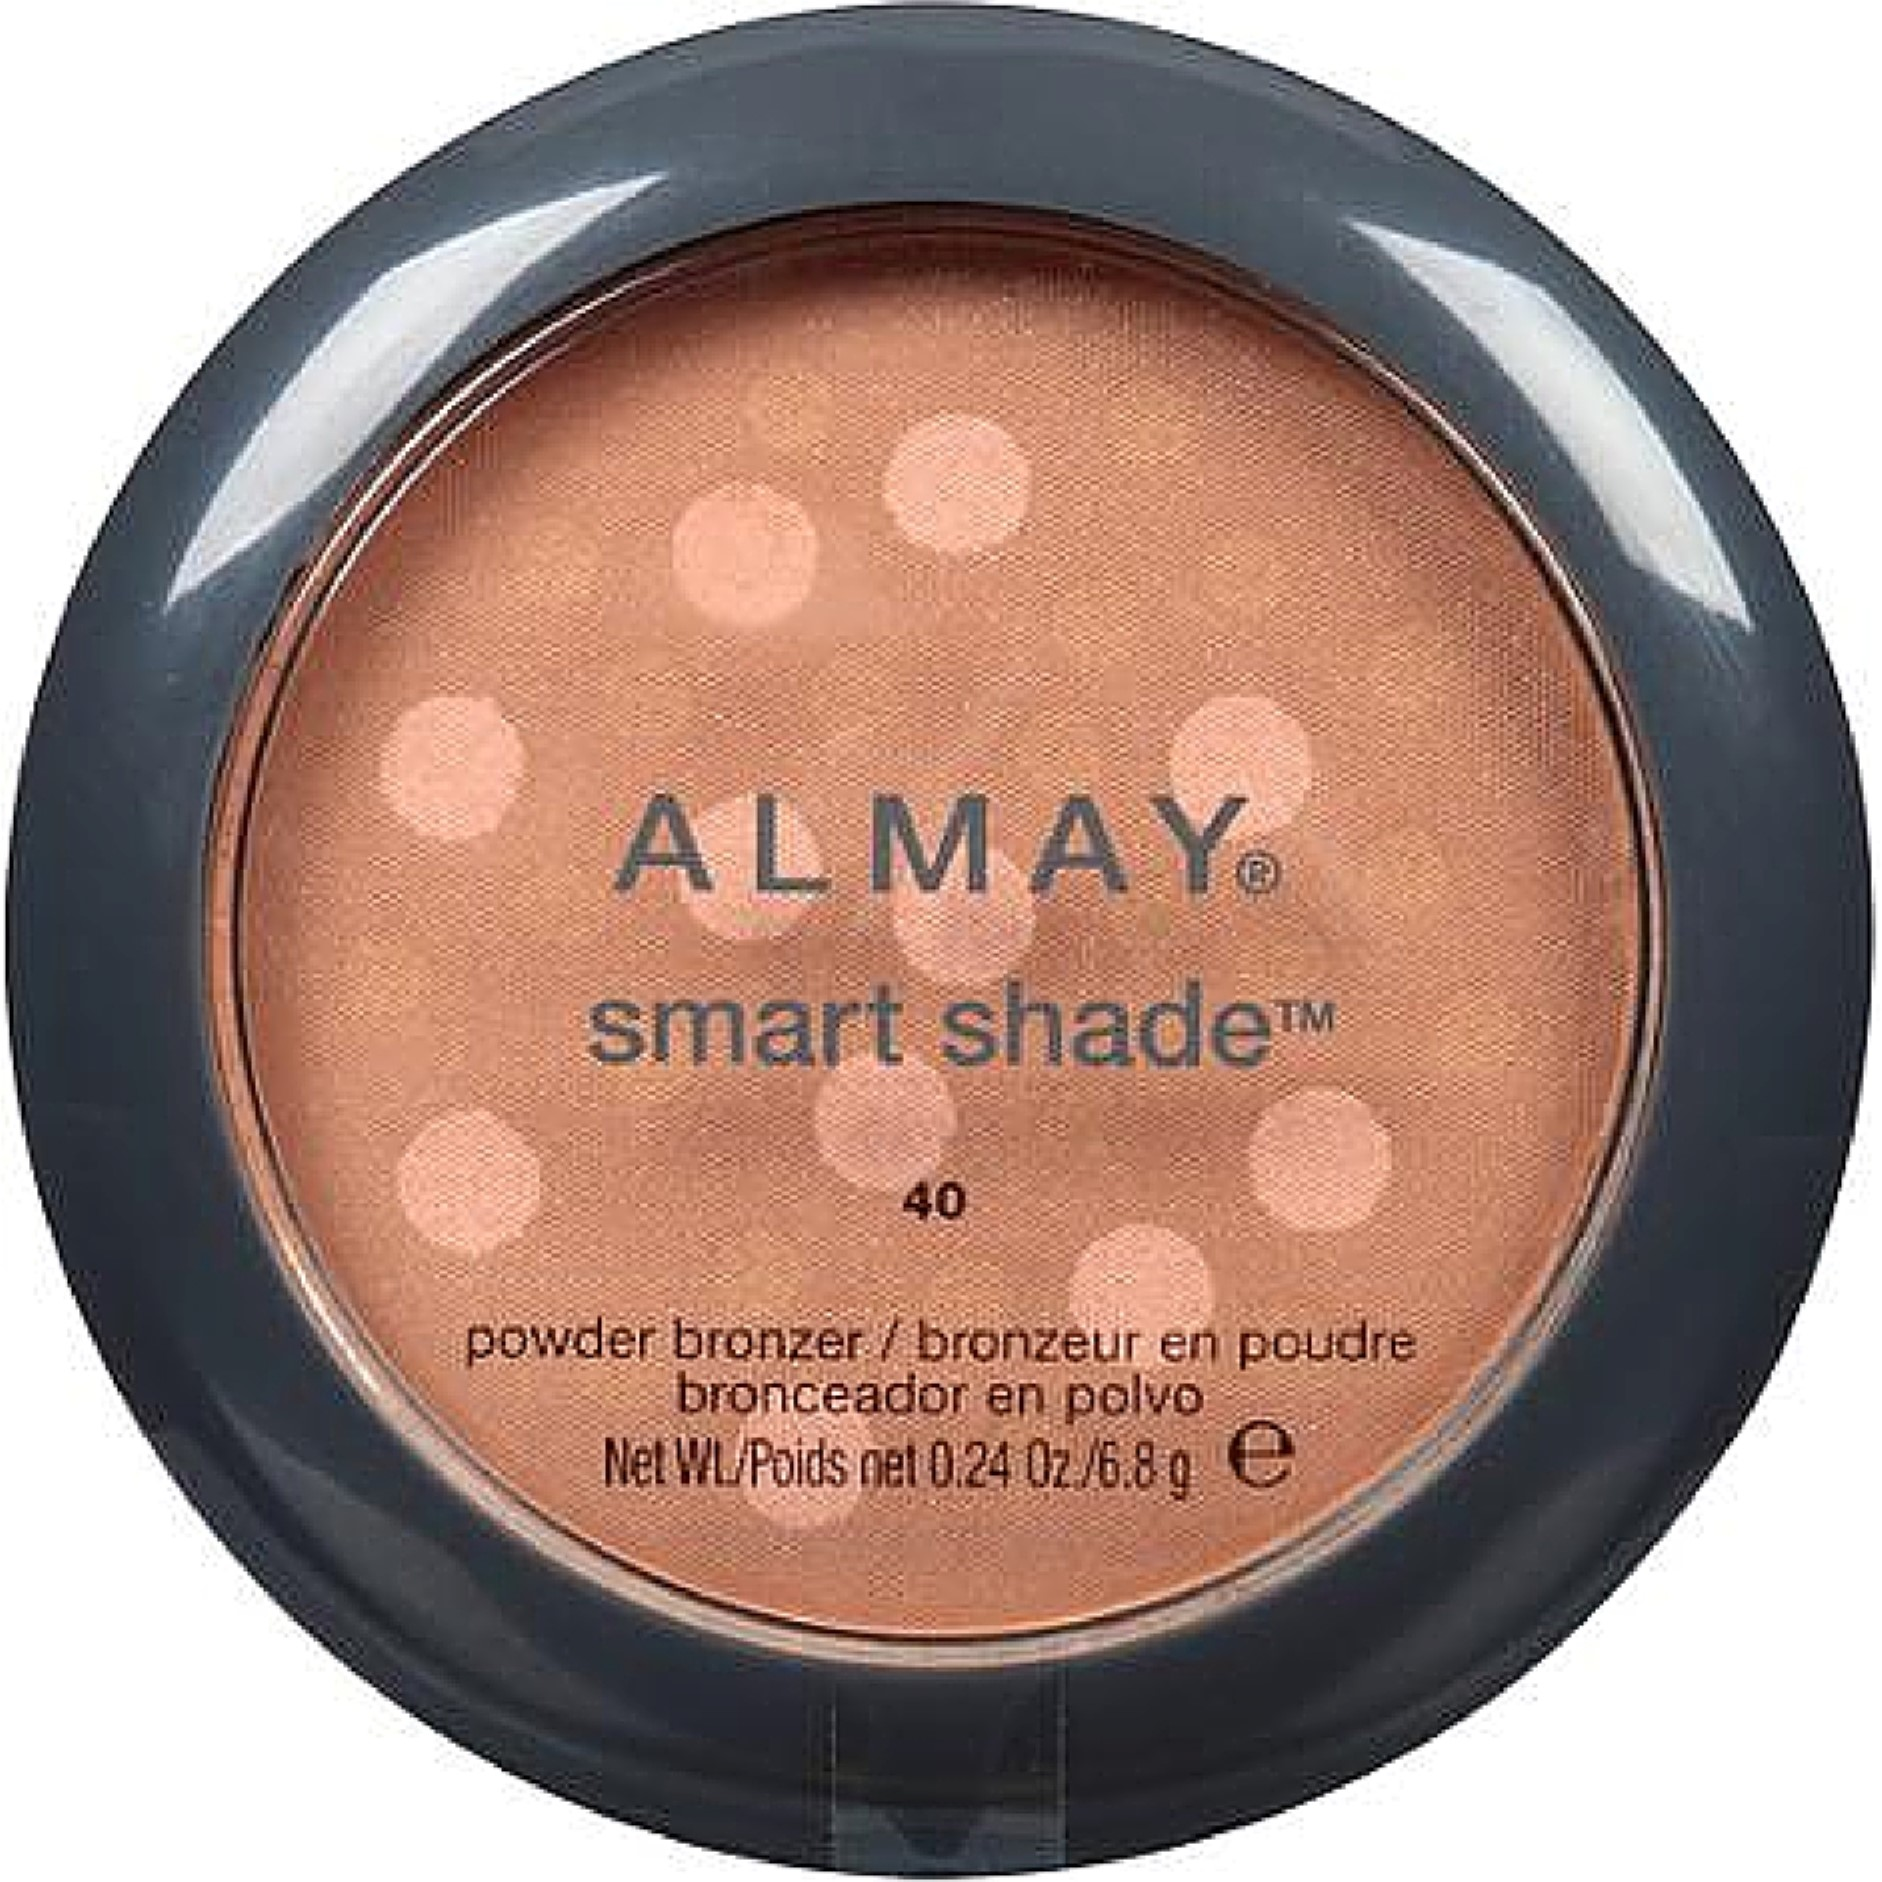 Almay Smart Shade Powder Bronzer, Sunkissed [40] 0.24 oz (Pack of 3)